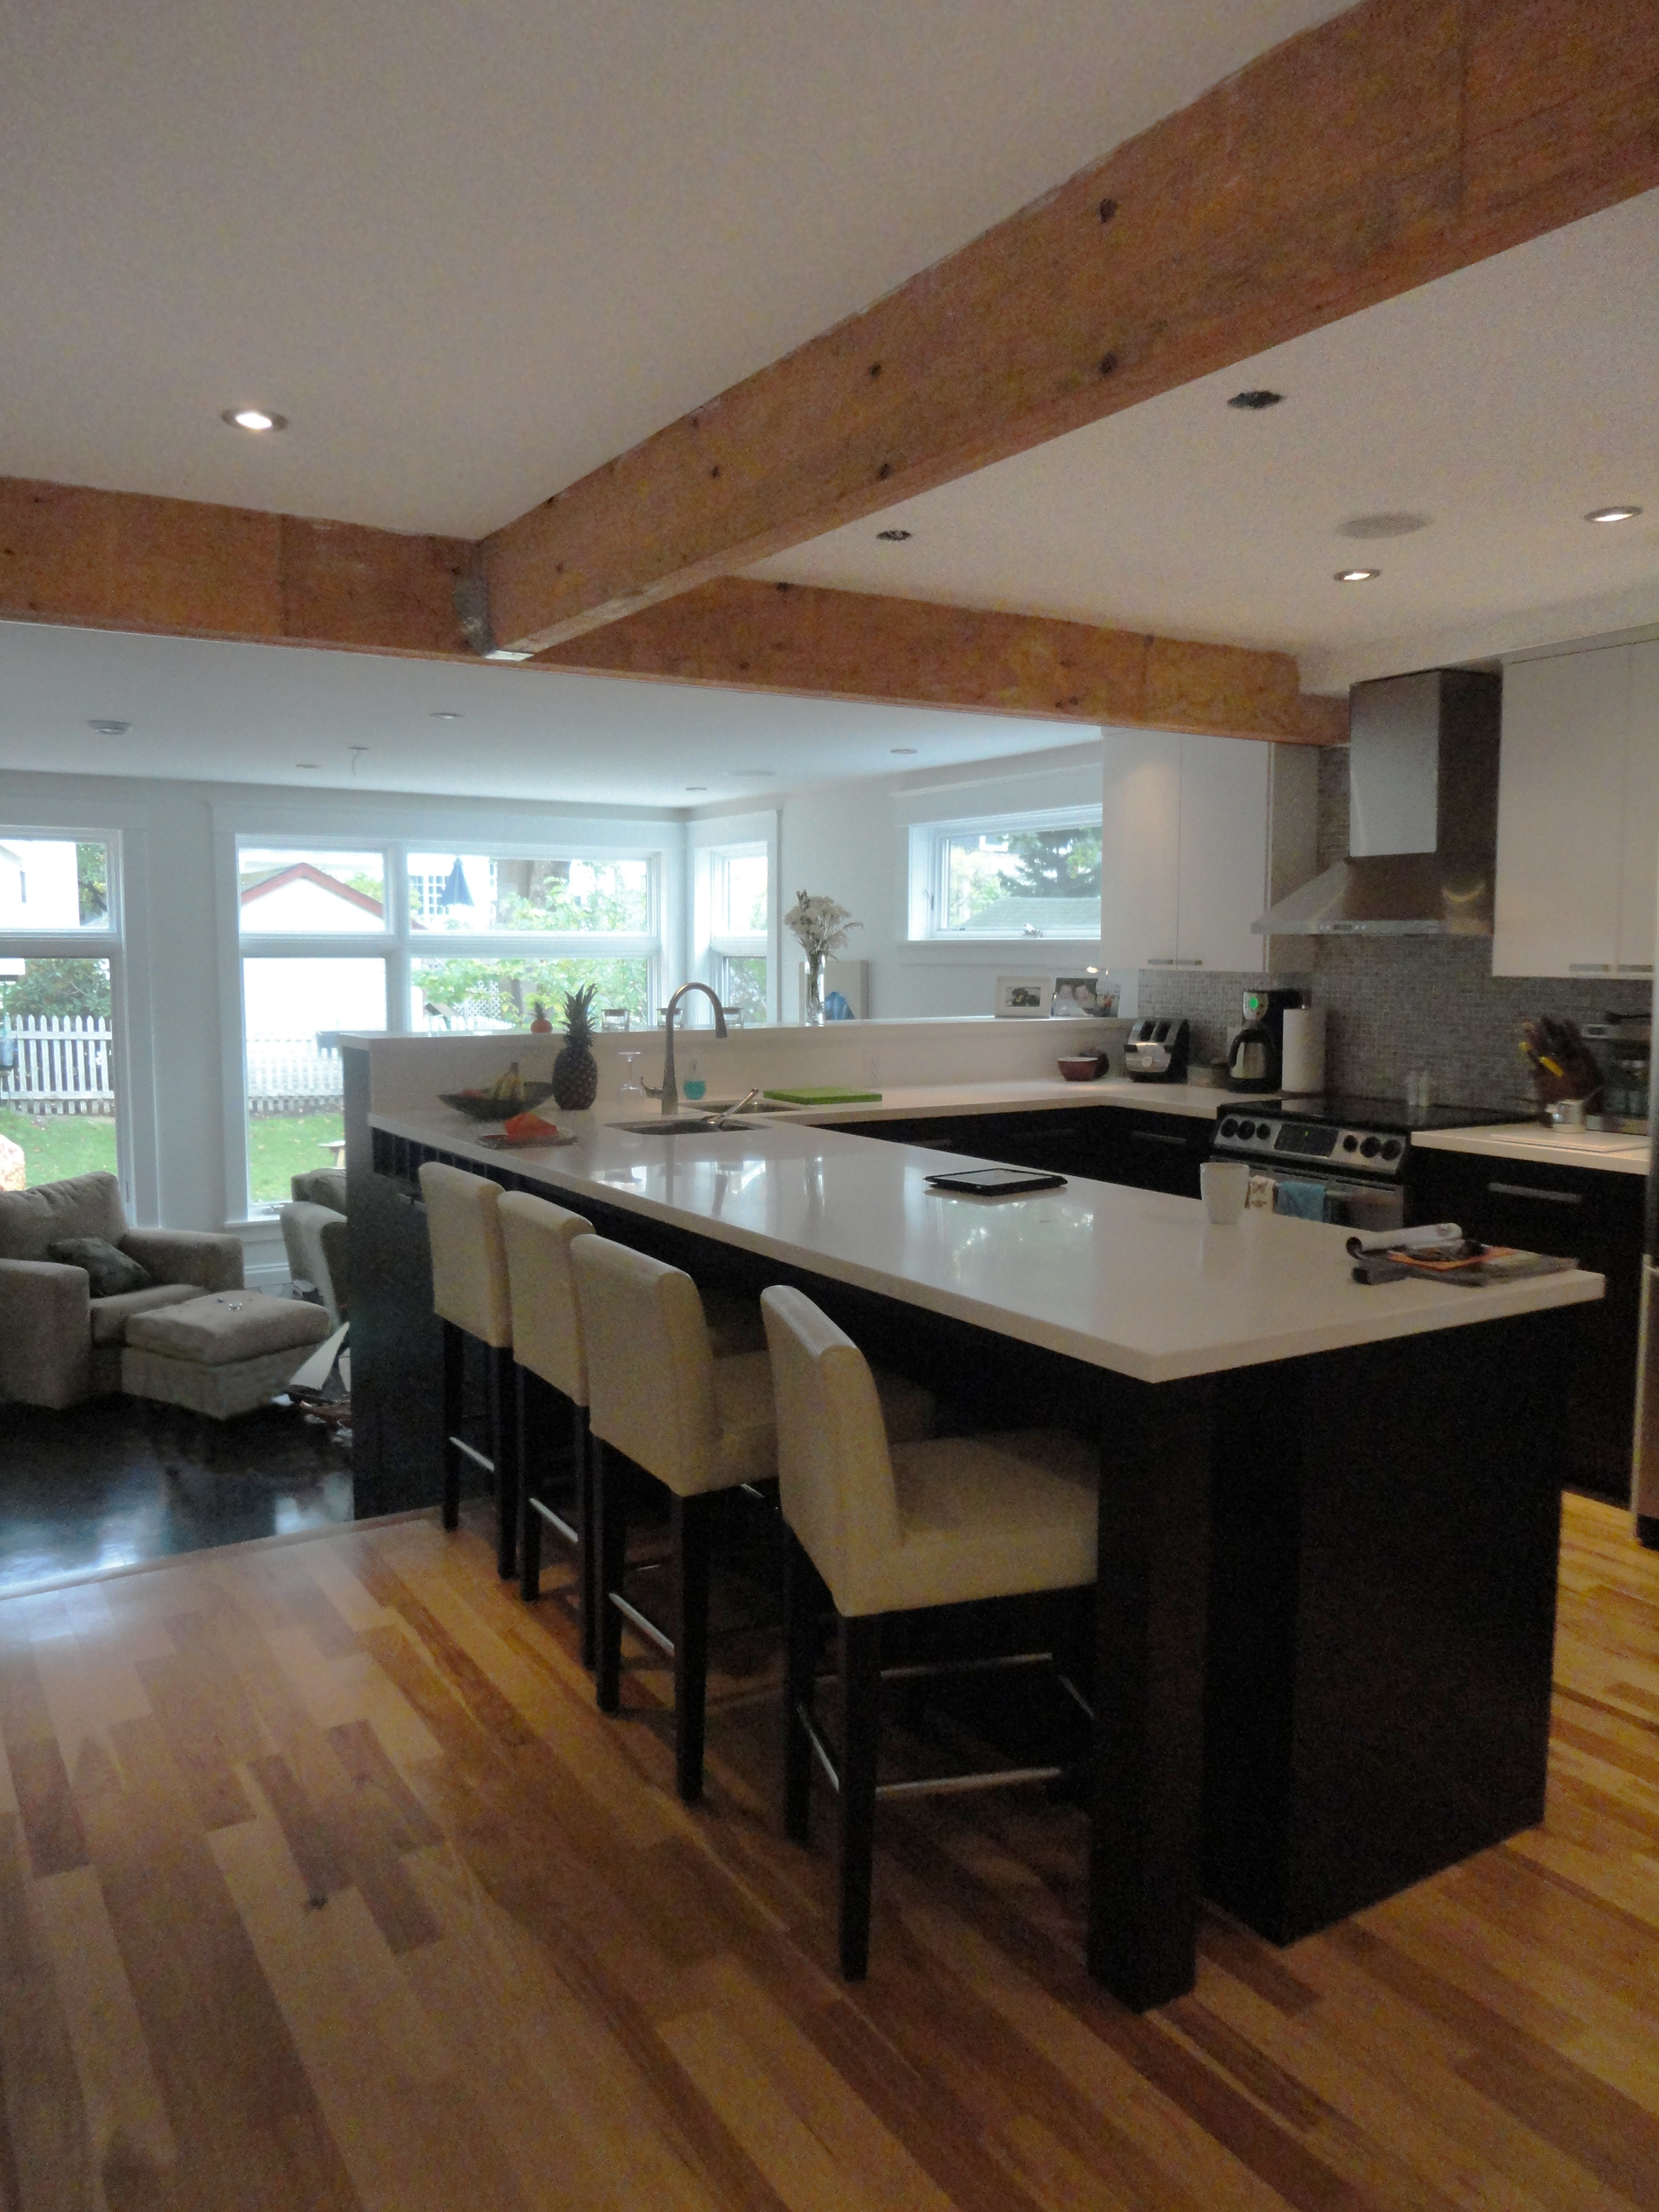 "The heart of this renovation, the new open concept kitchen connects the living spaces and has great views to yard.                                  Normal     0                     false     false     false         EN-US     JA     X-NONE                                                                                                                                                                                                                                                                                                                                                                                                                                                                                                                                                                                                                                                                                                               /* Style Definitions */ table.MsoNormalTable 	{mso-style-name:""Table Normal""; 	mso-tstyle-rowband-size:0; 	mso-tstyle-colband-size:0; 	mso-style-noshow:yes; 	mso-style-priority:99; 	mso-style-parent:""""; 	mso-padding-alt:0cm 5.4pt 0cm 5.4pt; 	mso-para-margin:0cm; 	mso-para-margin-bottom:.0001pt; 	mso-pagination:widow-orphan; 	font-size:12.0pt; 	font-family:Cambria; 	mso-ascii-font-family:Cambria; 	mso-ascii-theme-font:minor-latin; 	mso-hansi-font-family:Cambria; 	mso-hansi-theme-font:minor-latin;}"